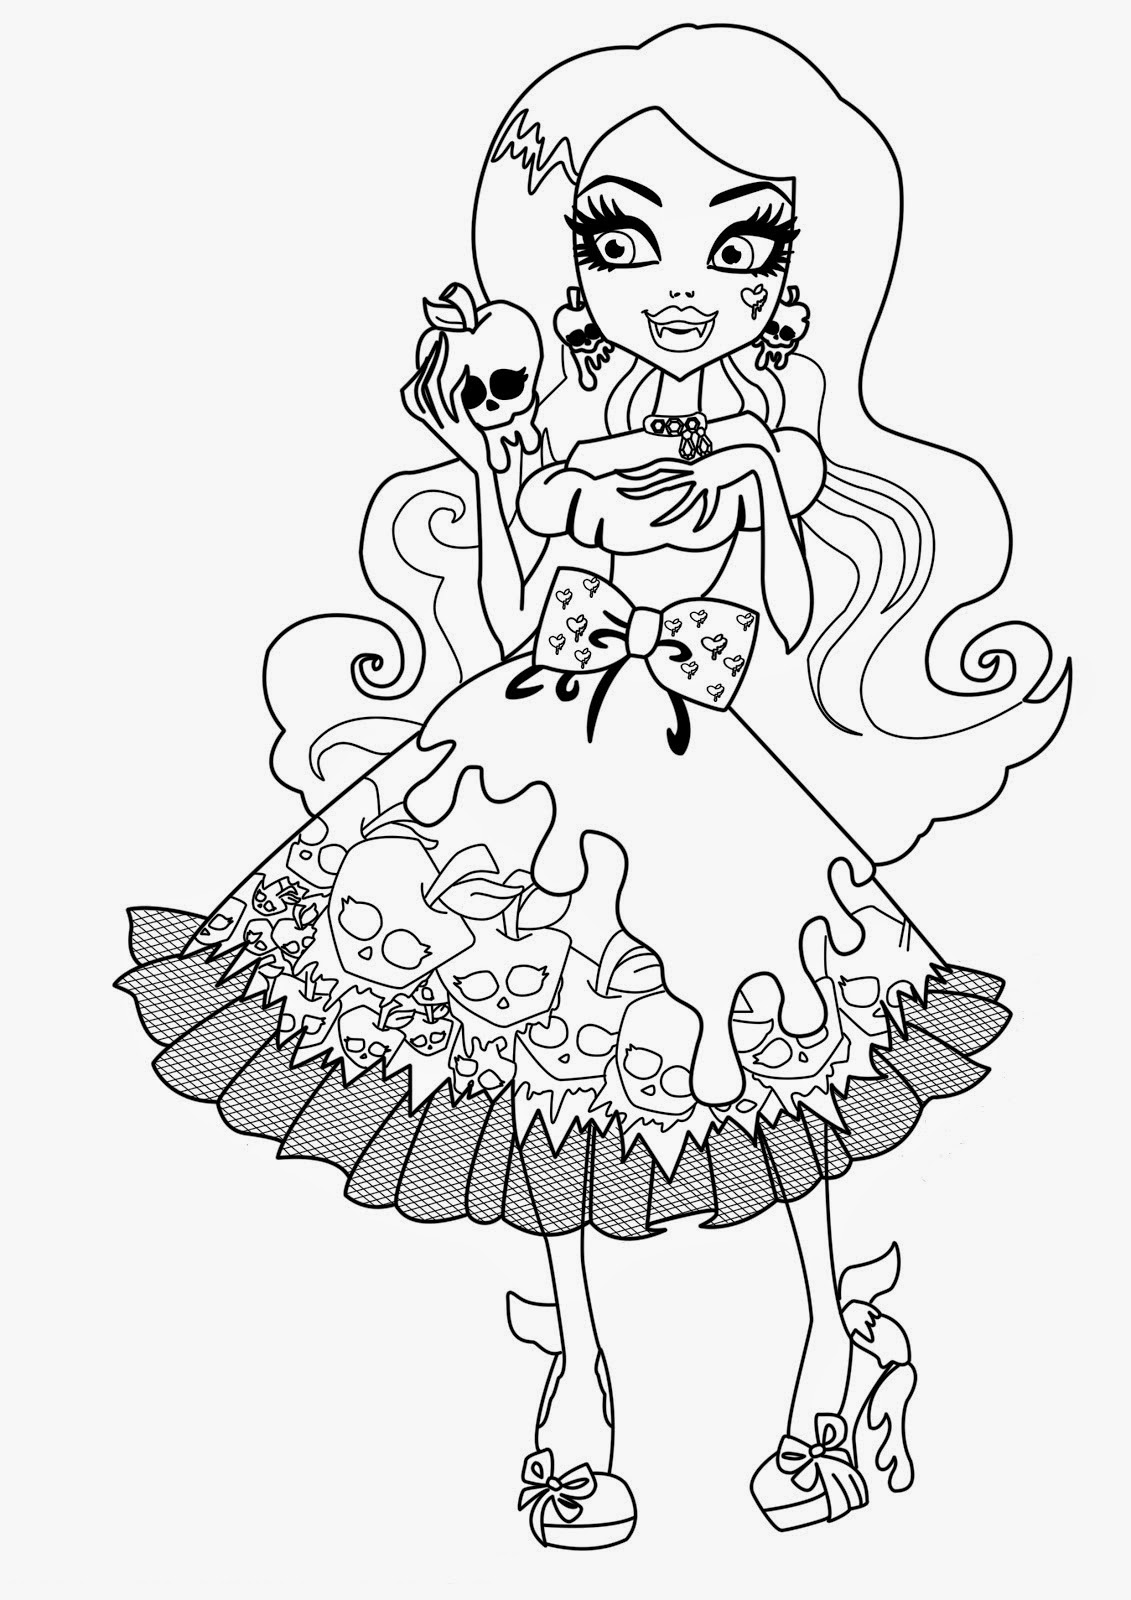 free colouring pages monster high free printable monster high coloring pages for kids pages high free colouring monster